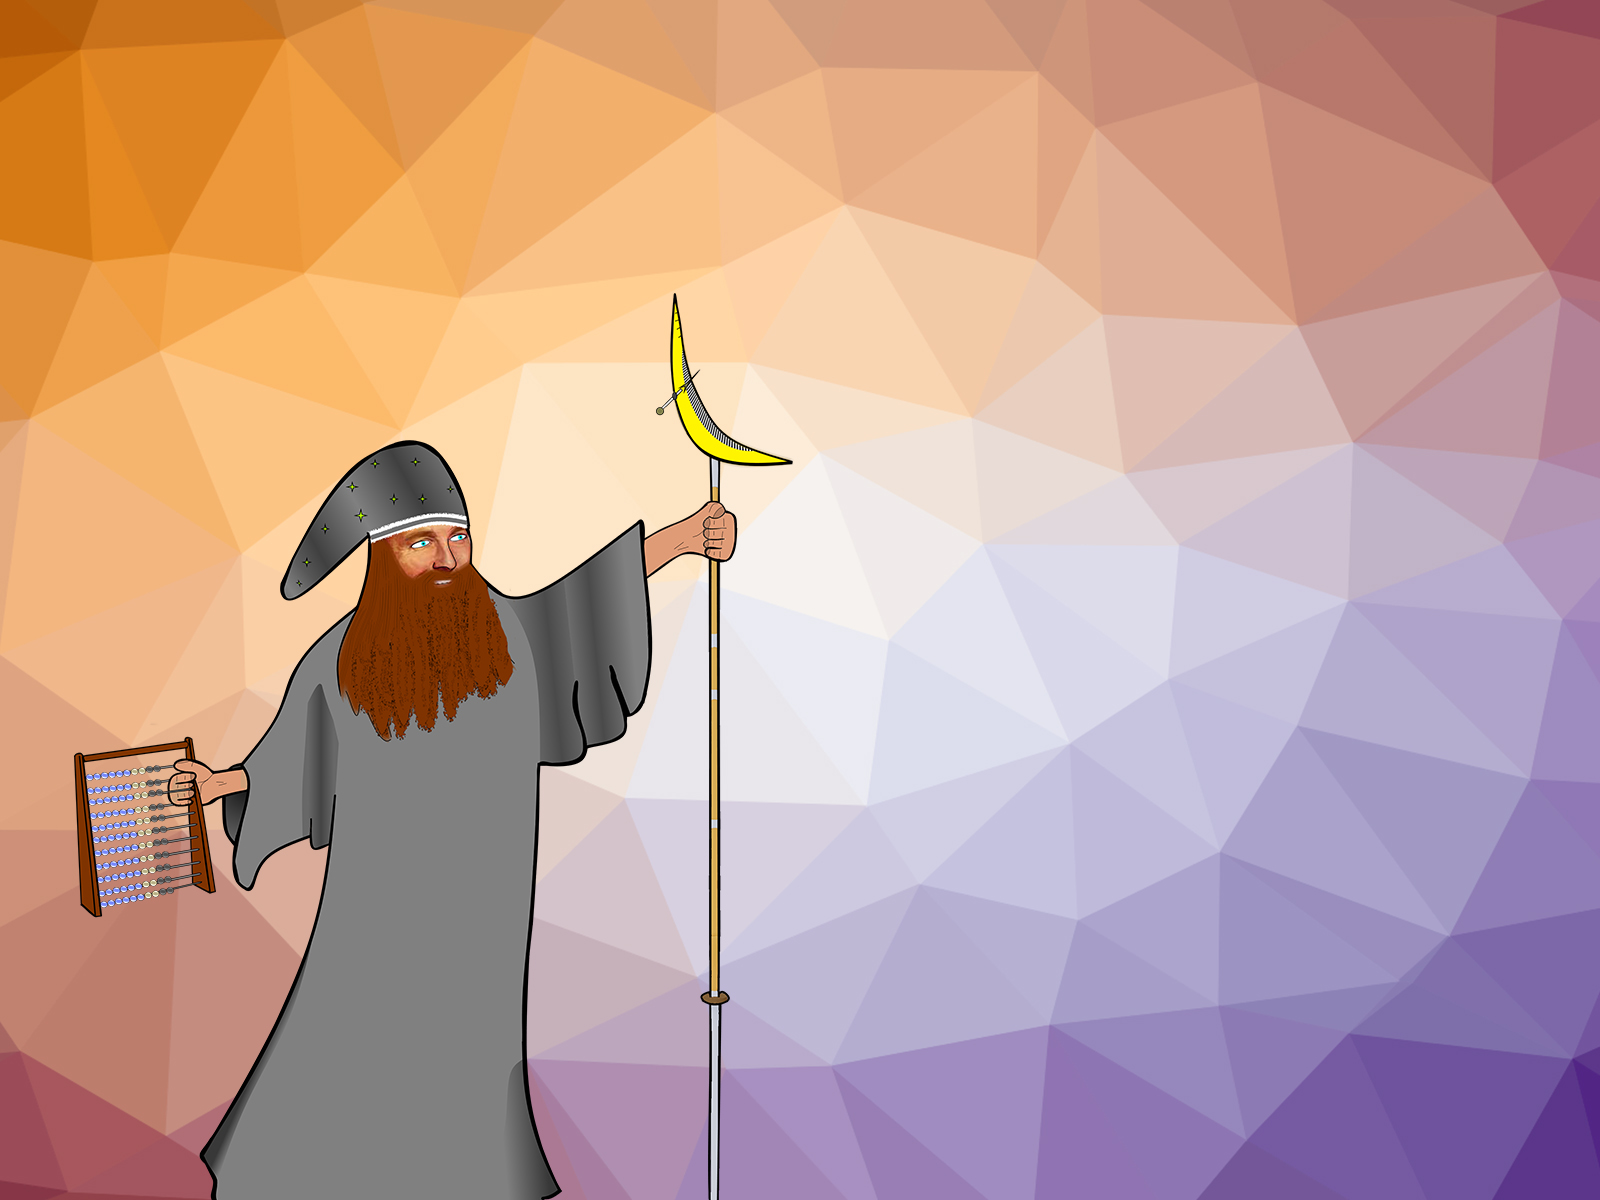 Wizard Fantasy Science PPT Backgrounds